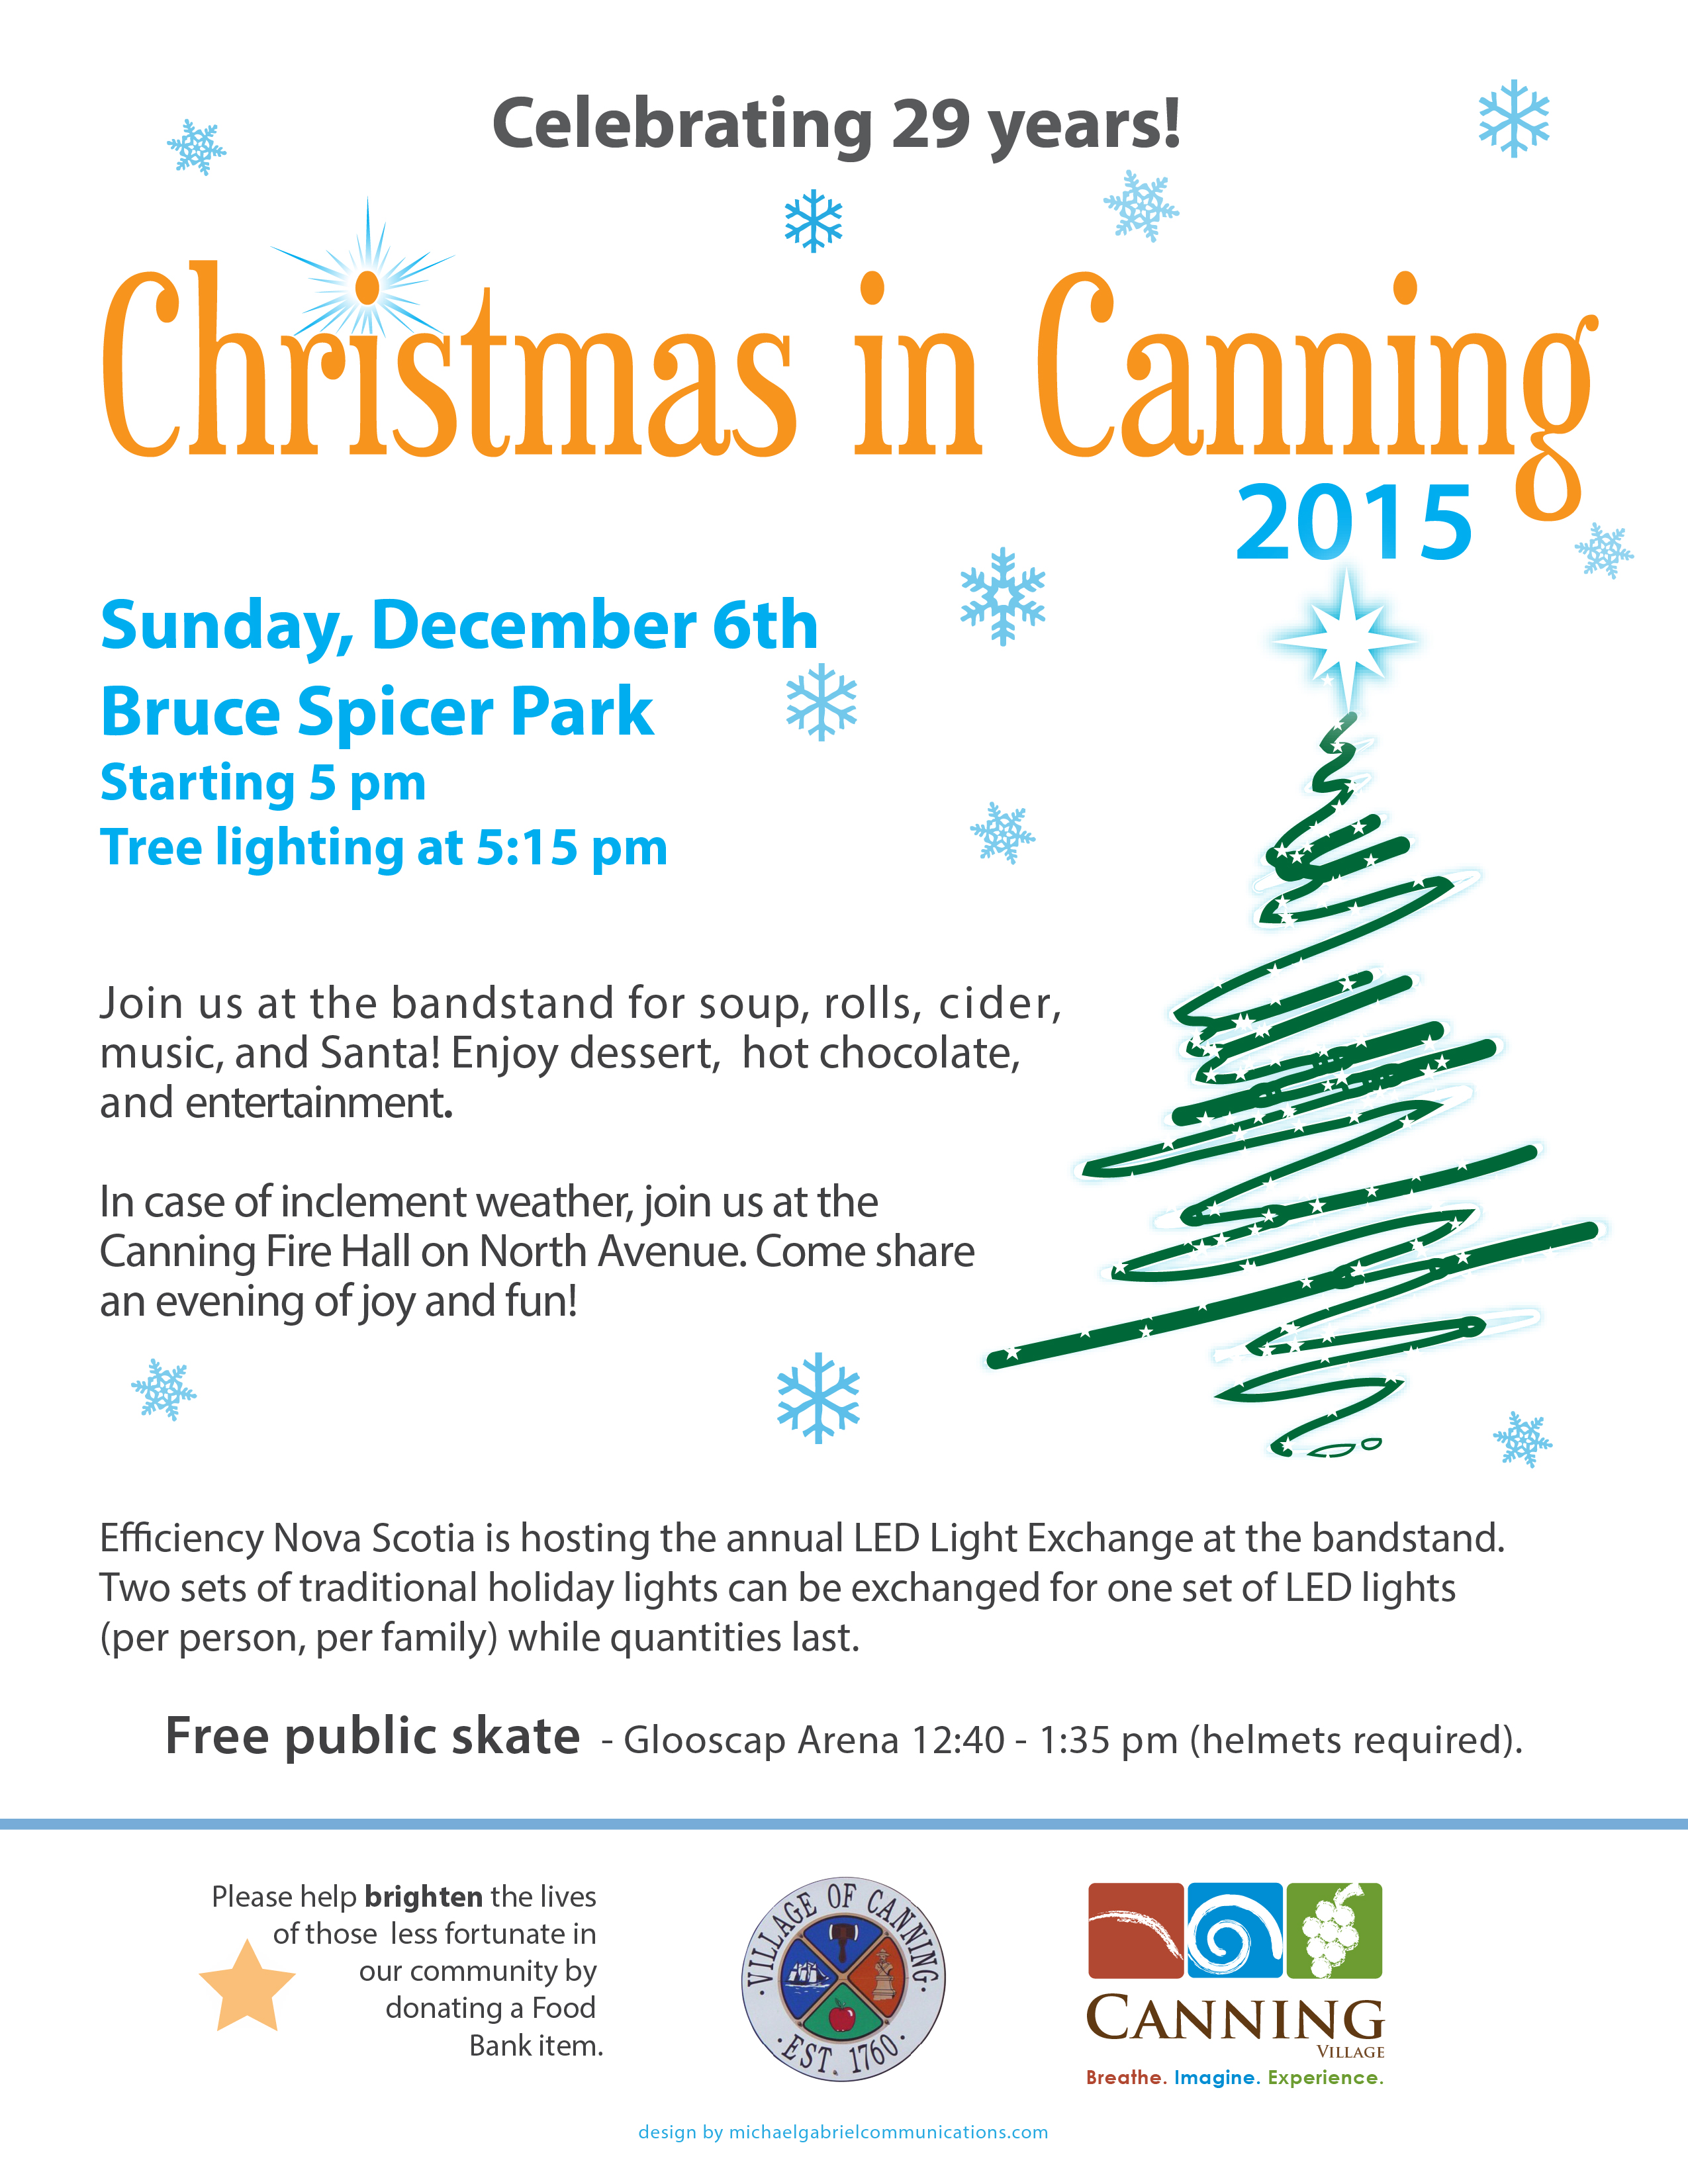 Christmas in Canning 2015